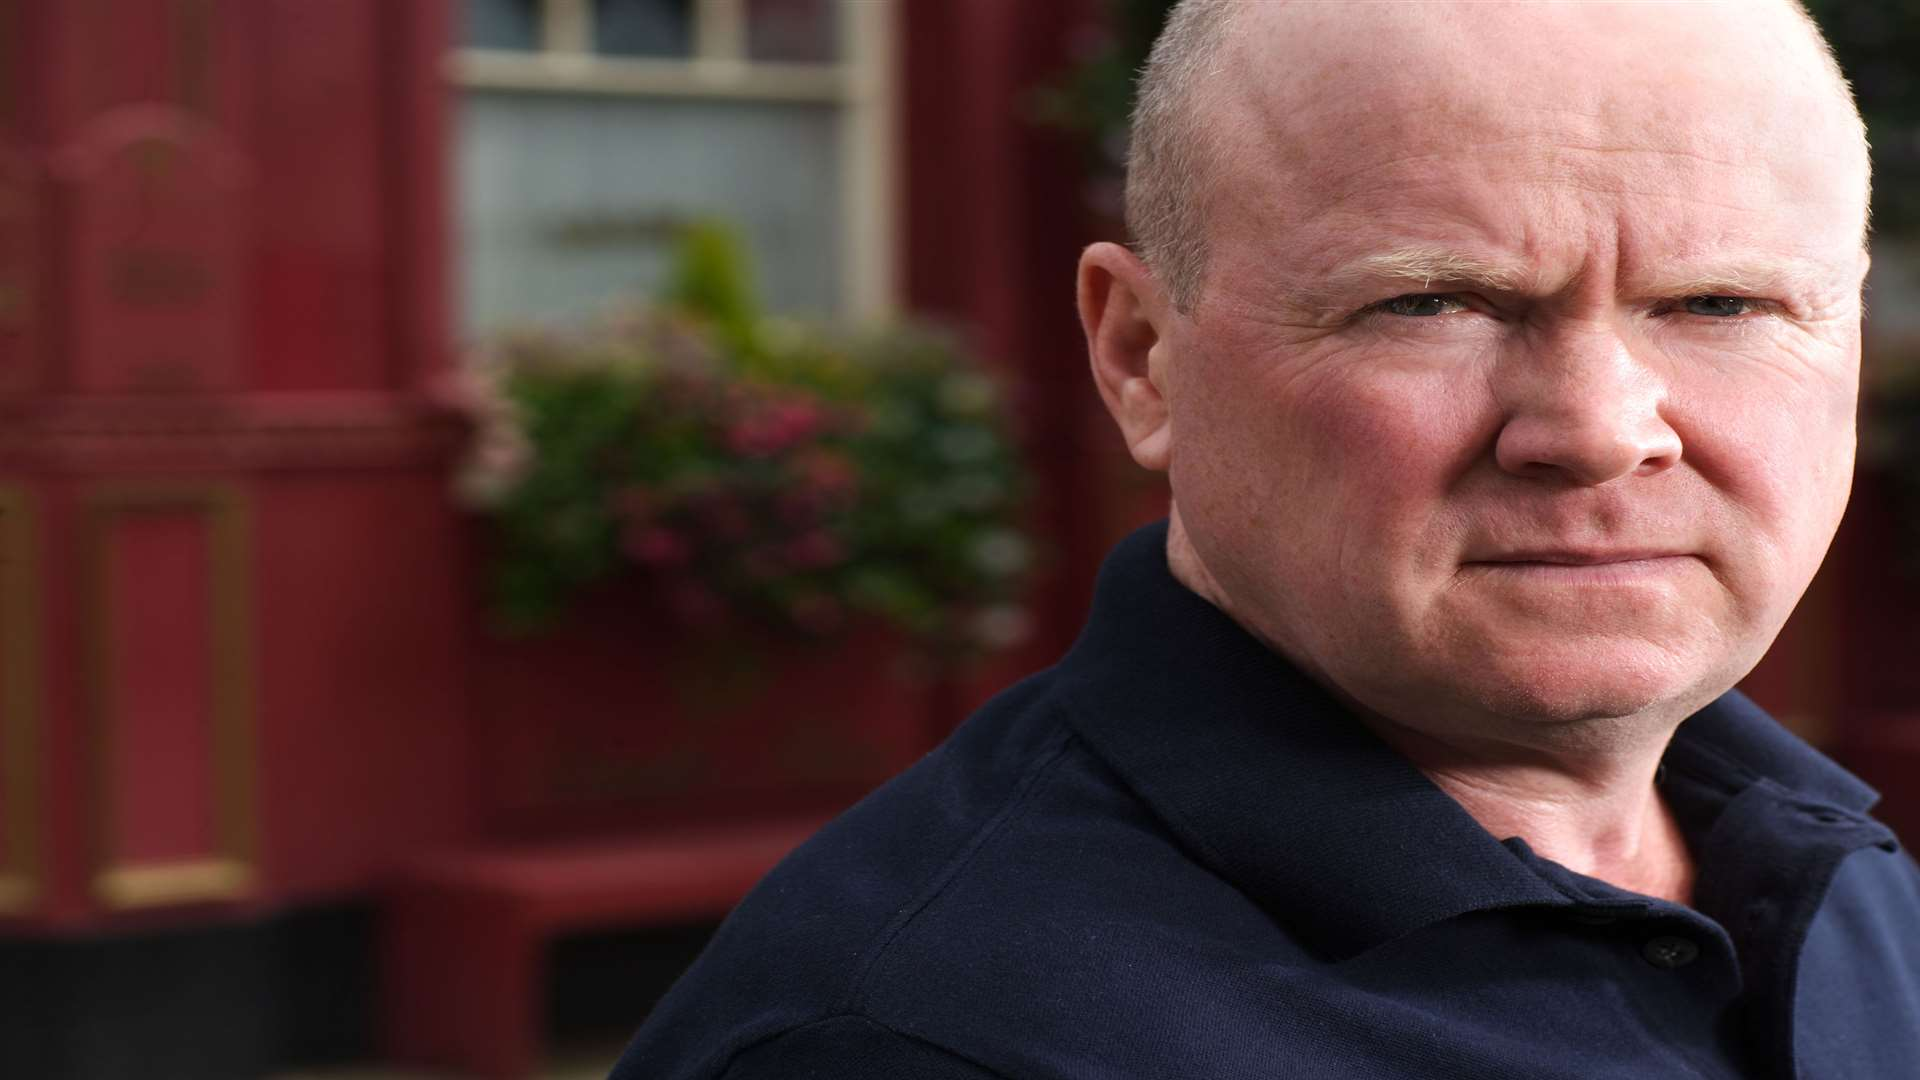 Phil Mitchell, played by Steve McFadden